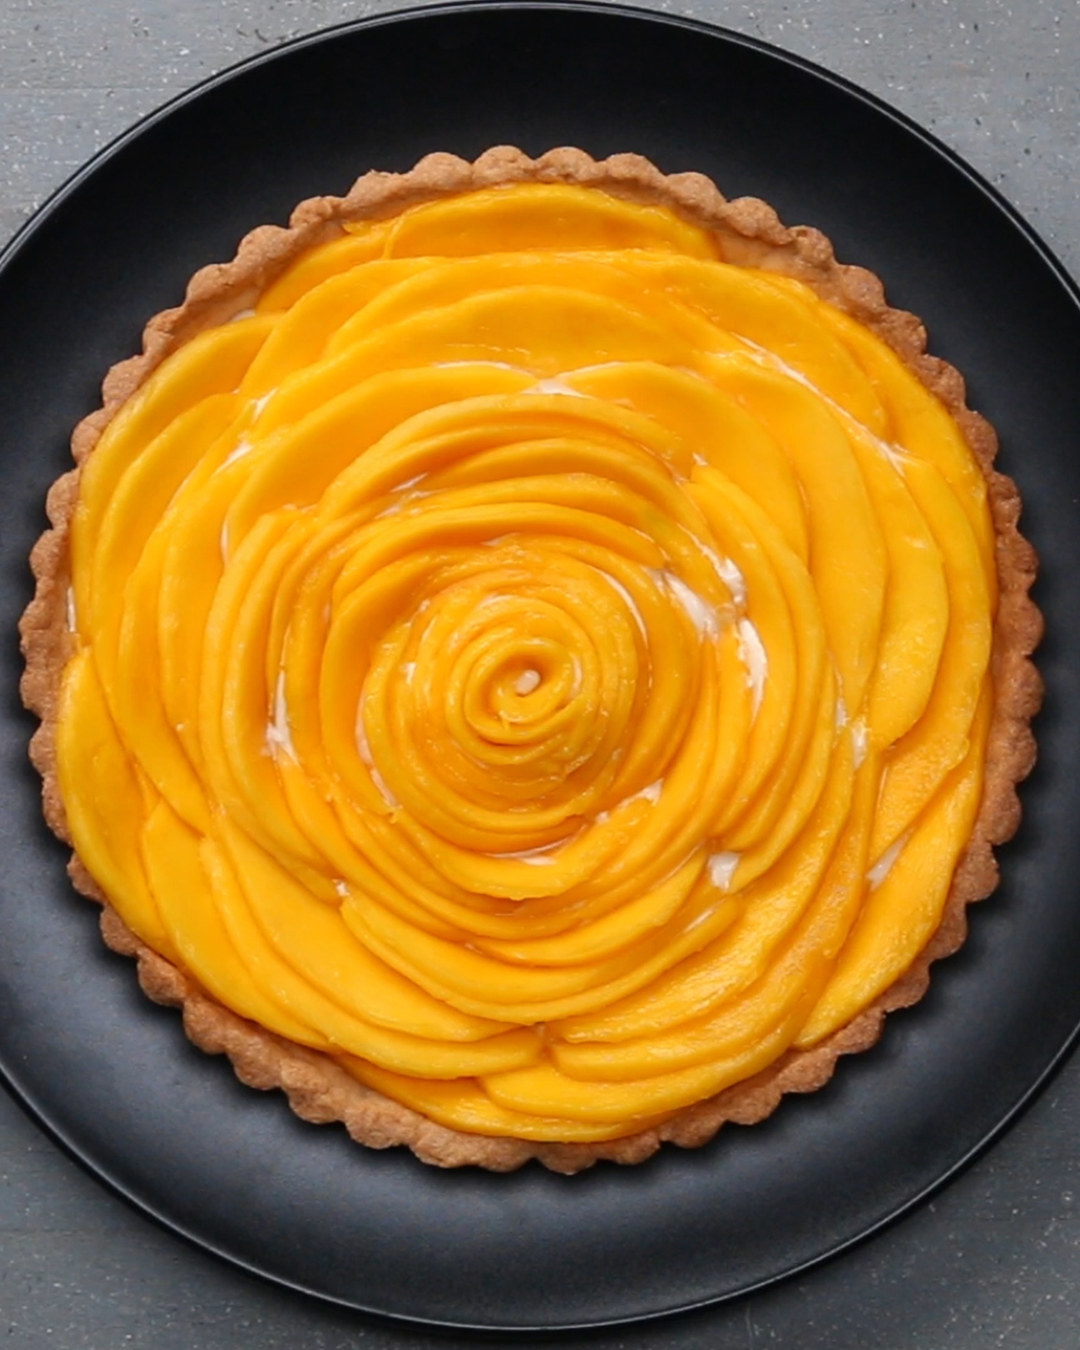 This Refreshing Mango Tart Looks Fancy But Is Easier Than You Think